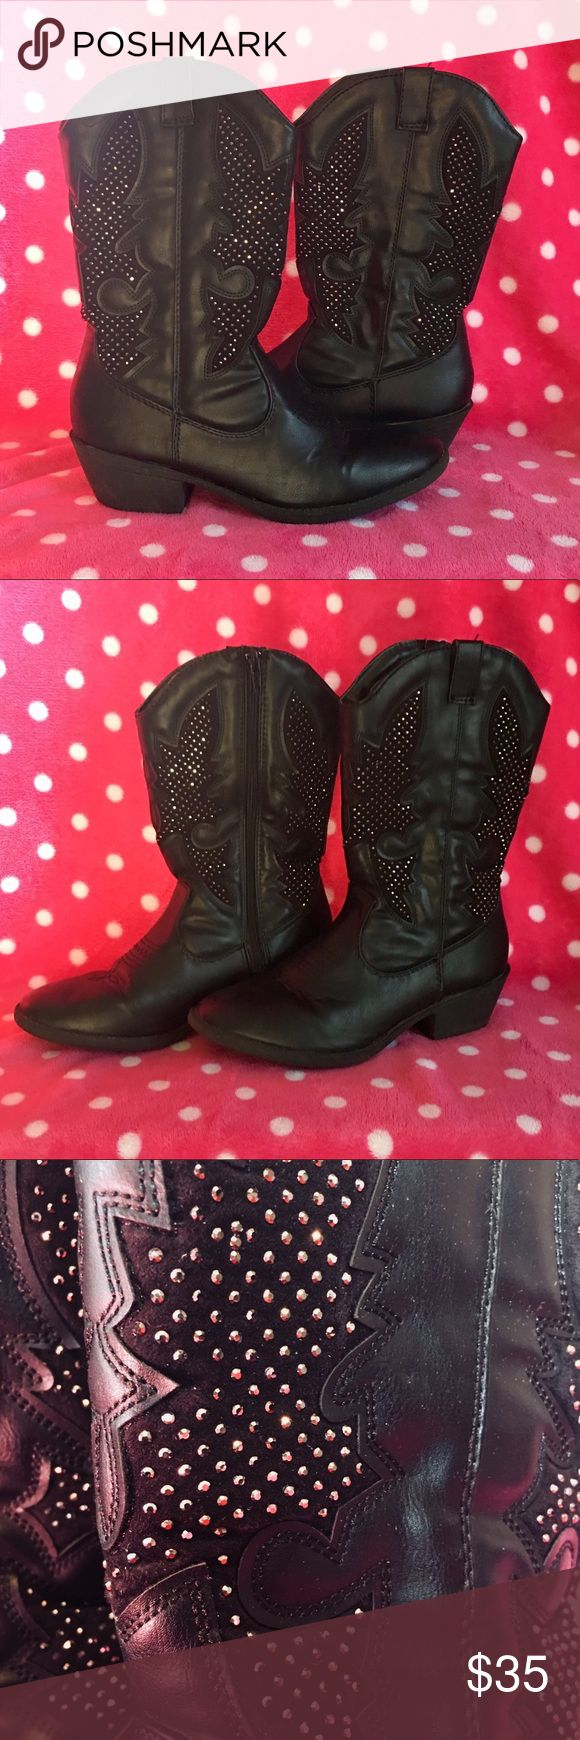 Ladies black cowboy boots from Justice, size 7 The ladies black cowboy boots are size 7, from Justice, full zip on the inside of the leg, in excellent condition, and loaded with rhinestones for extra added ✨BLING✨ Justice Shoes Combat & Moto Boots